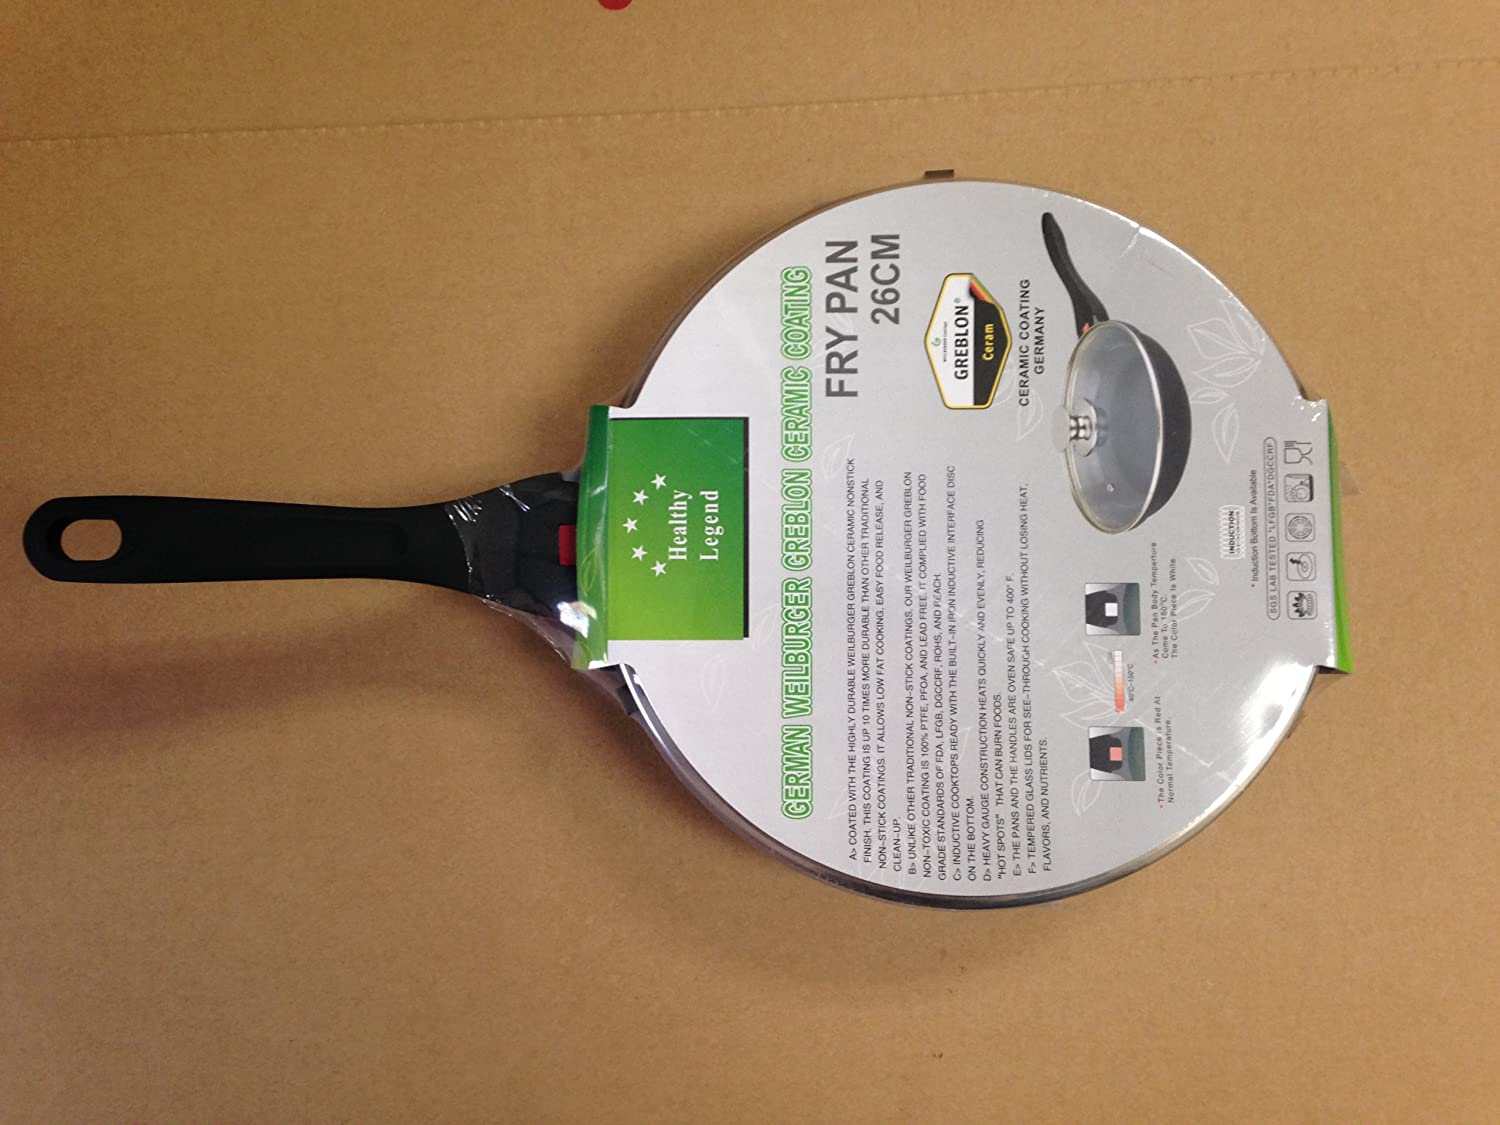 Eco Friendly Non-toxic Cook 26cmflypan 10.4 Fry Pan with Non-stick German Weilburger Ceramic Coating By Healthy Legend